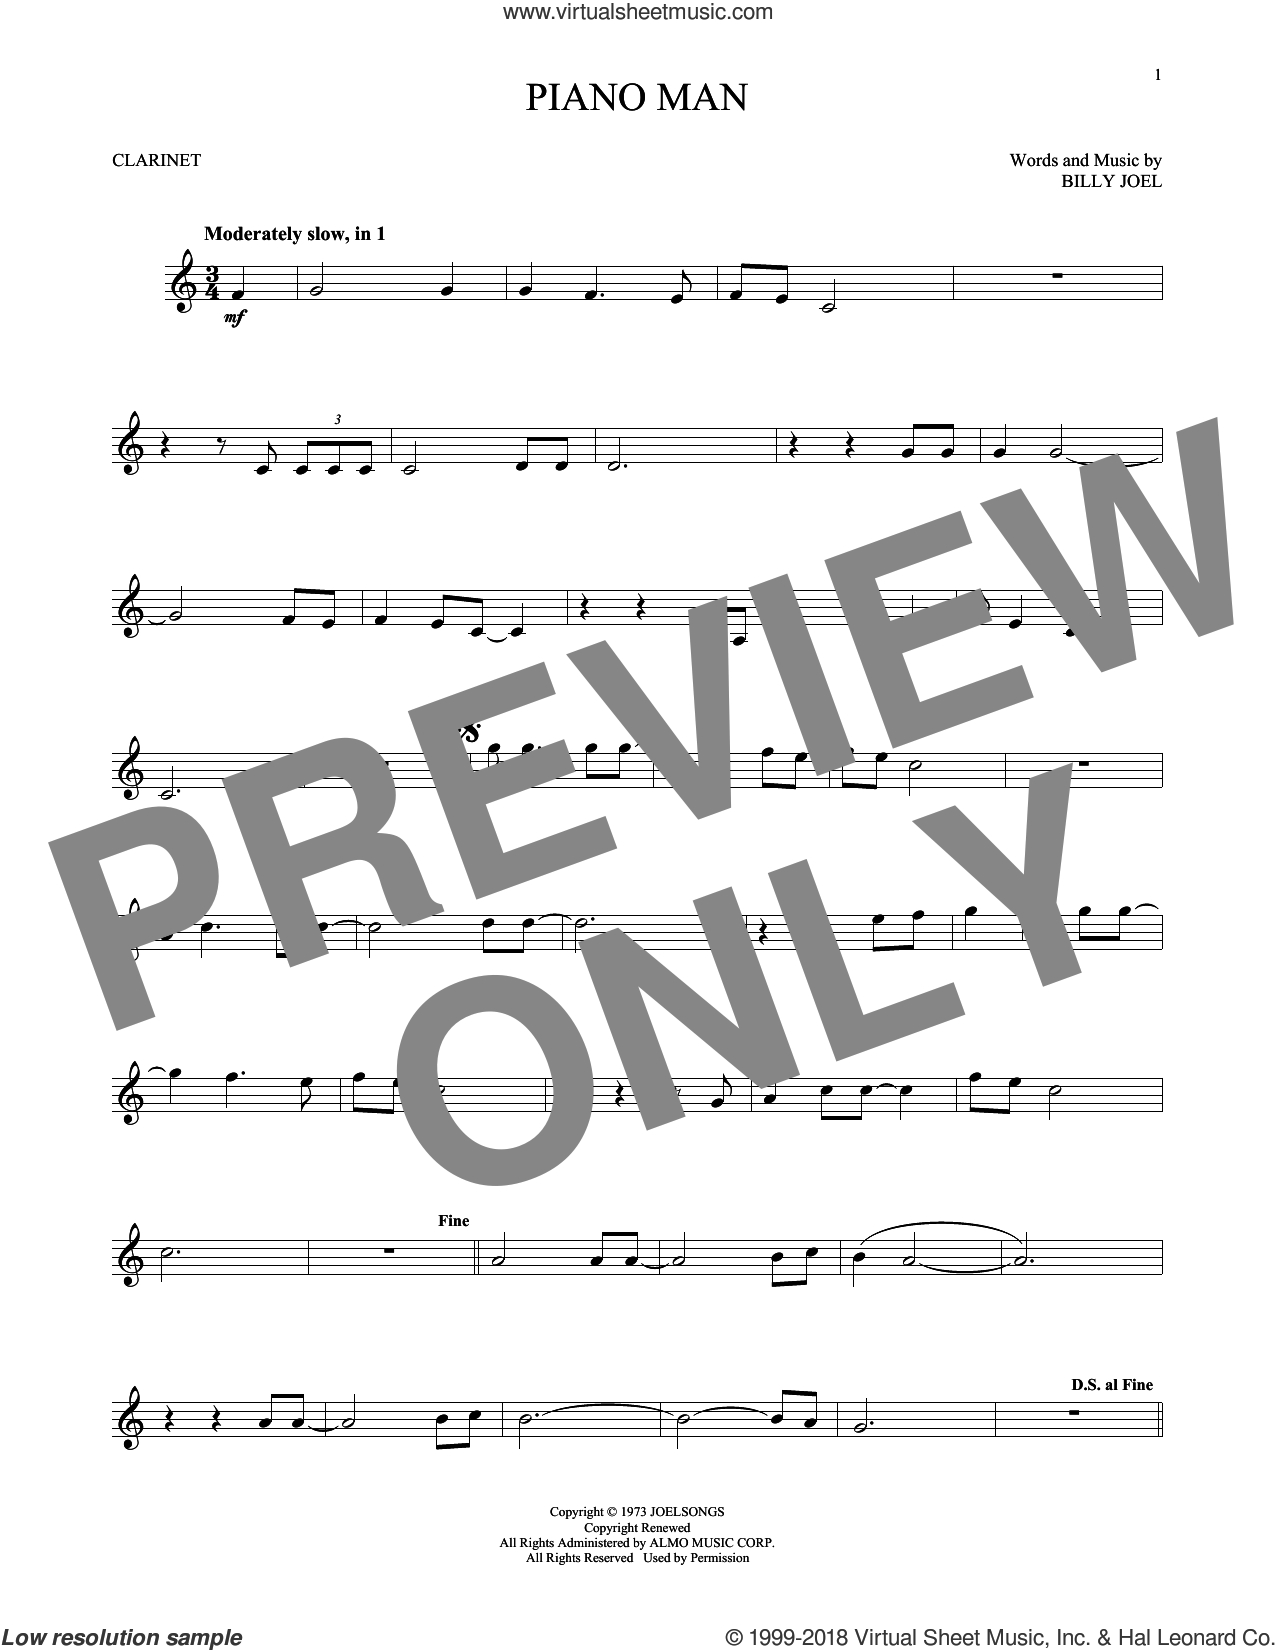 Piano Man sheet music for clarinet solo by Billy Joel, intermediate skill level